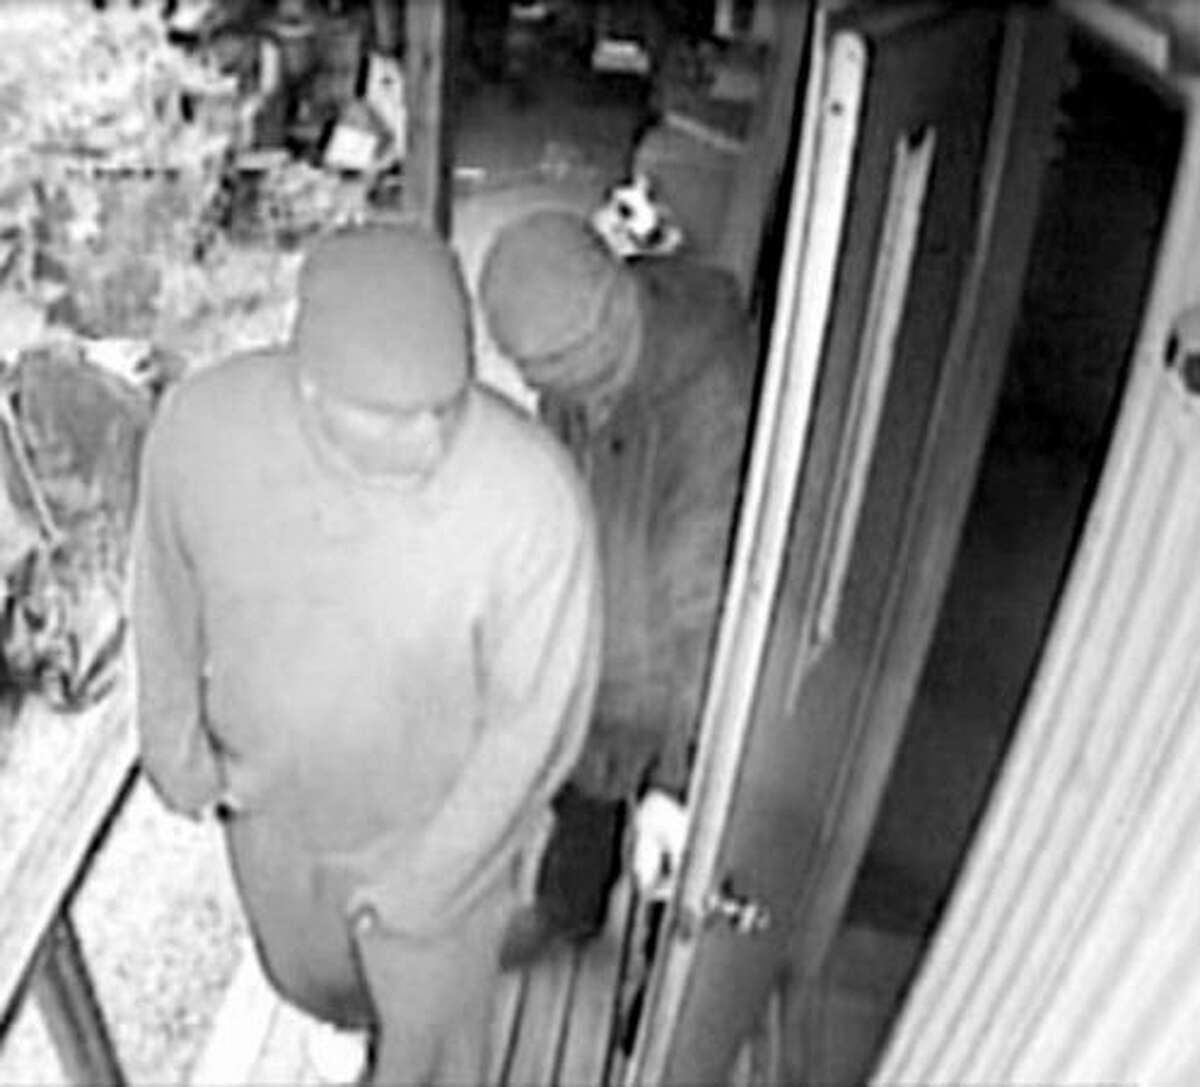 A surveillance image from an August 19 Vashon Island home-invasion robbery in the 9400 block of Southwest Gorsuch Road. Read more about the robbery here. (Photo from King County Sheriff's Office)